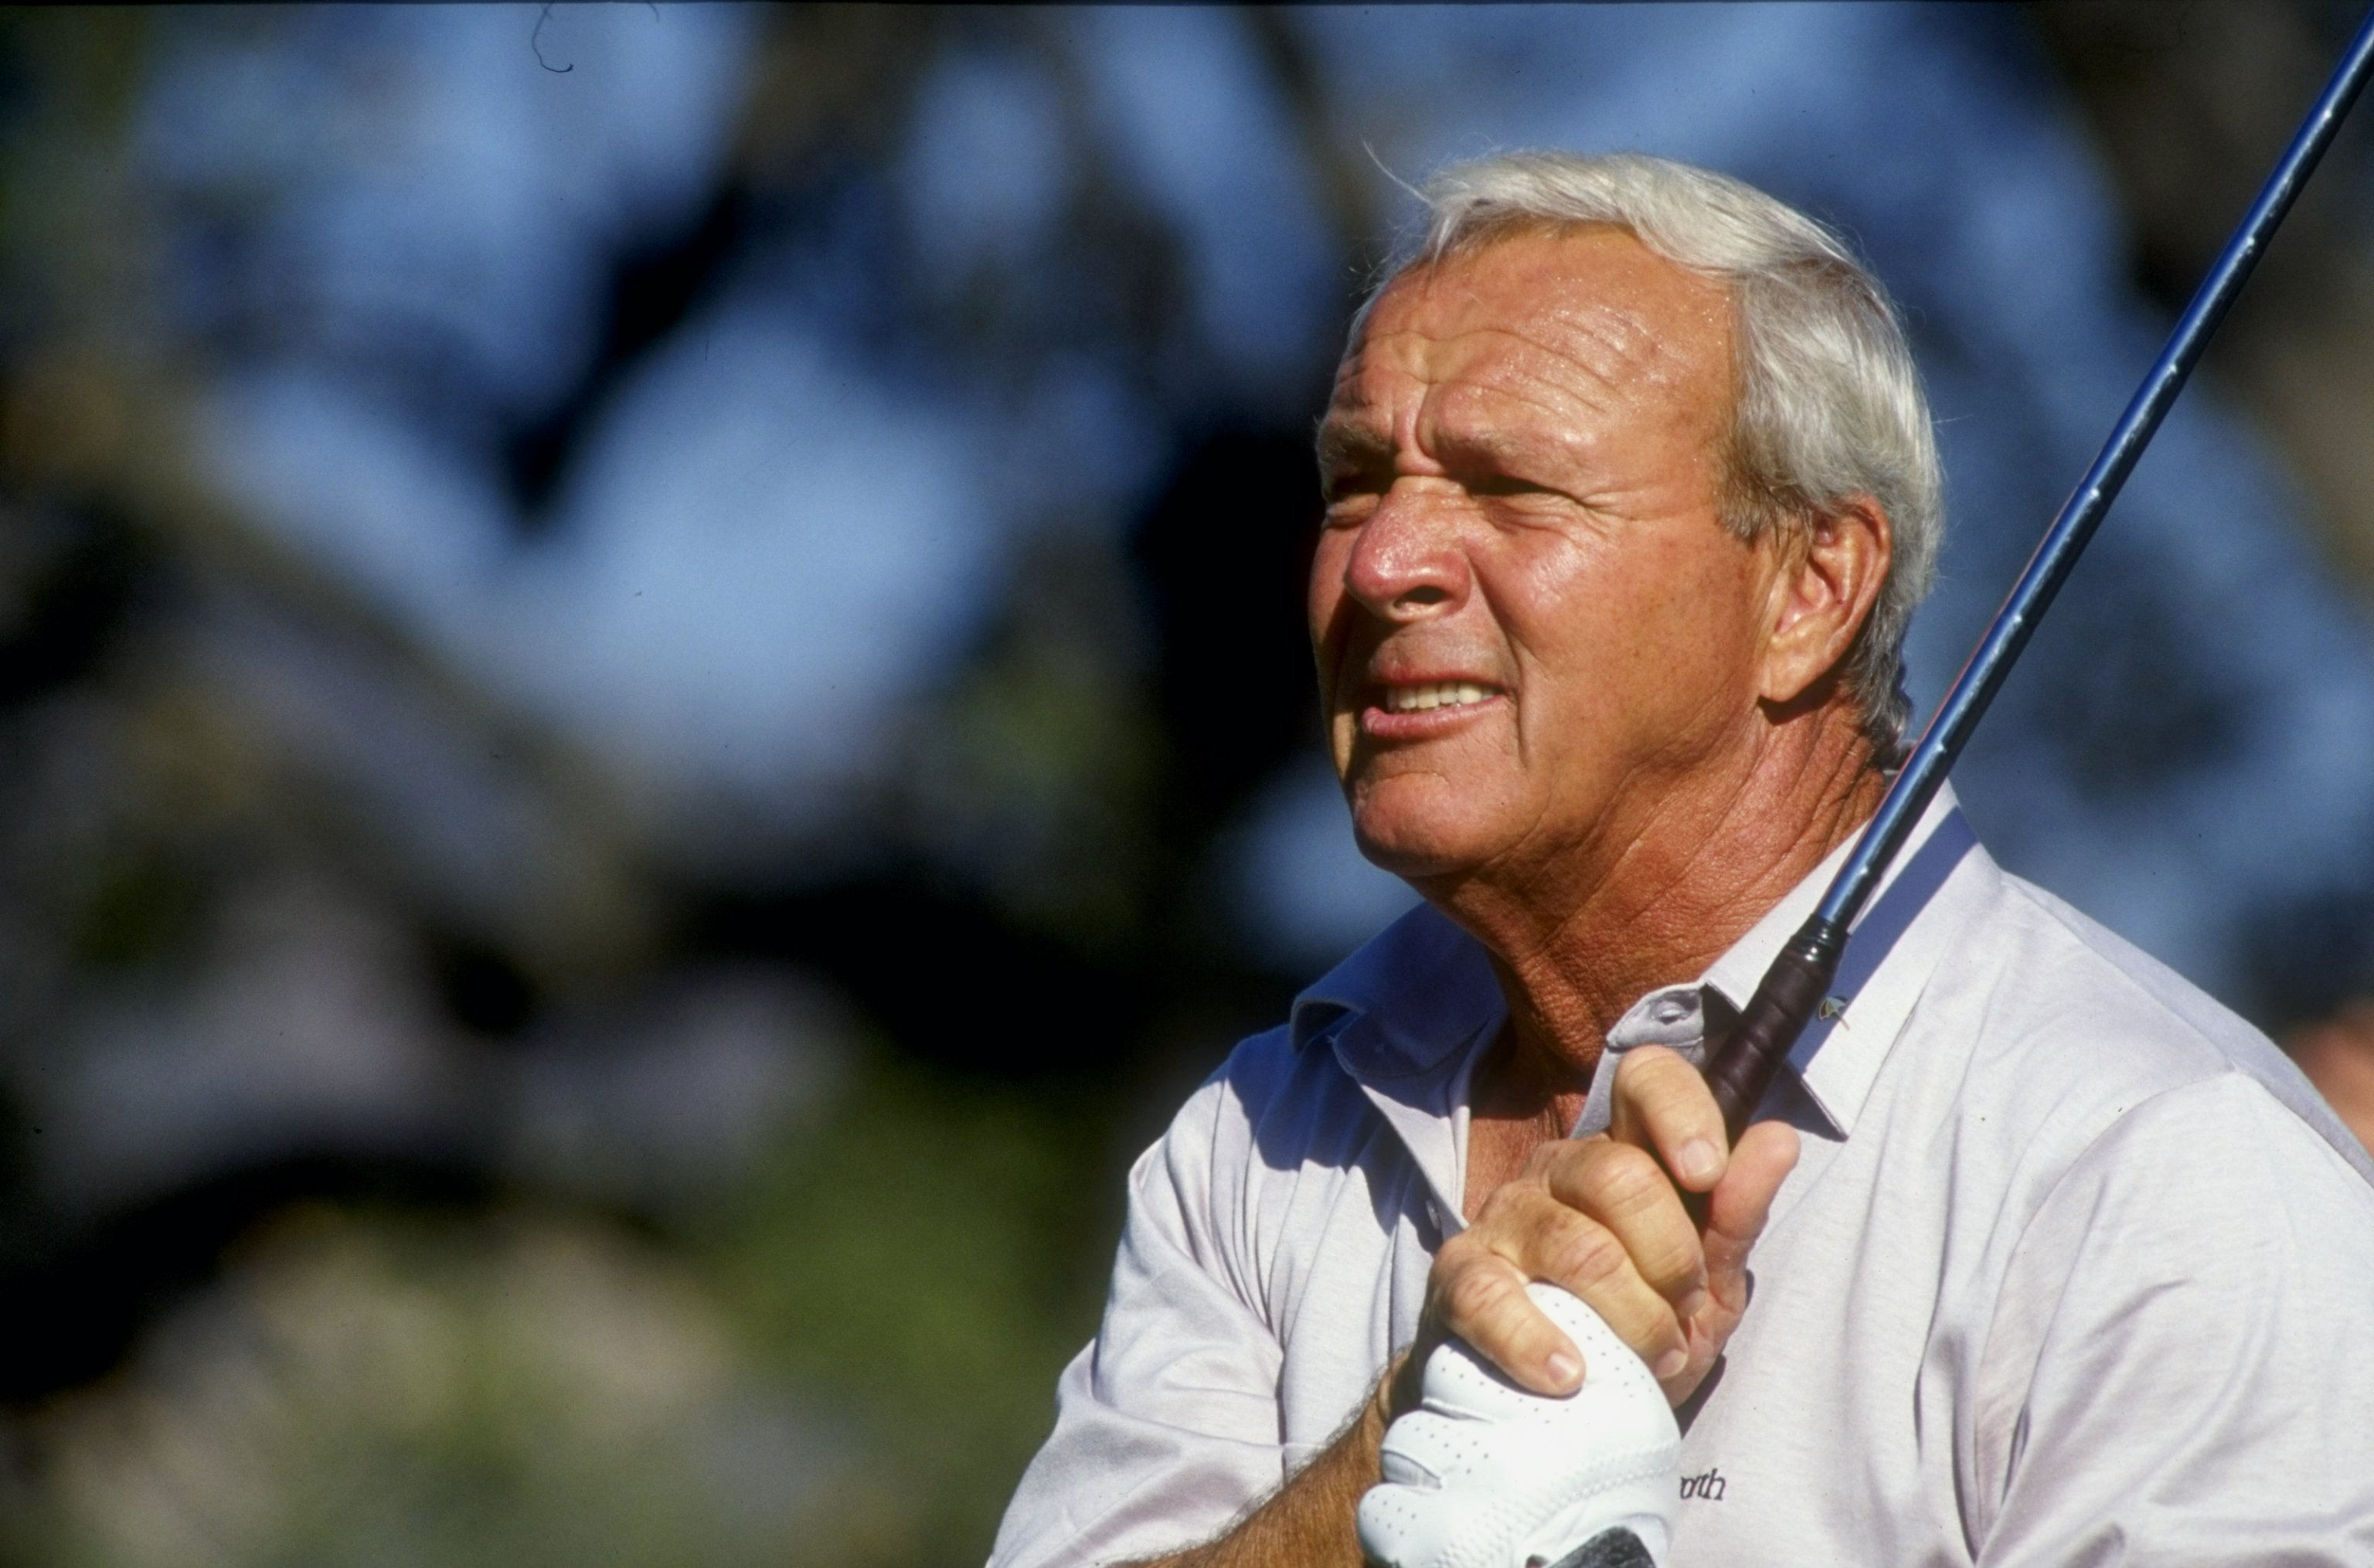 1990:  Arnold Palmer watches his shot during the 1990 RMCC Invitational at the Sherwood Country Club in Thousand Oaks, California. Mandatory Credit: Stephen Dunn  /Allsport